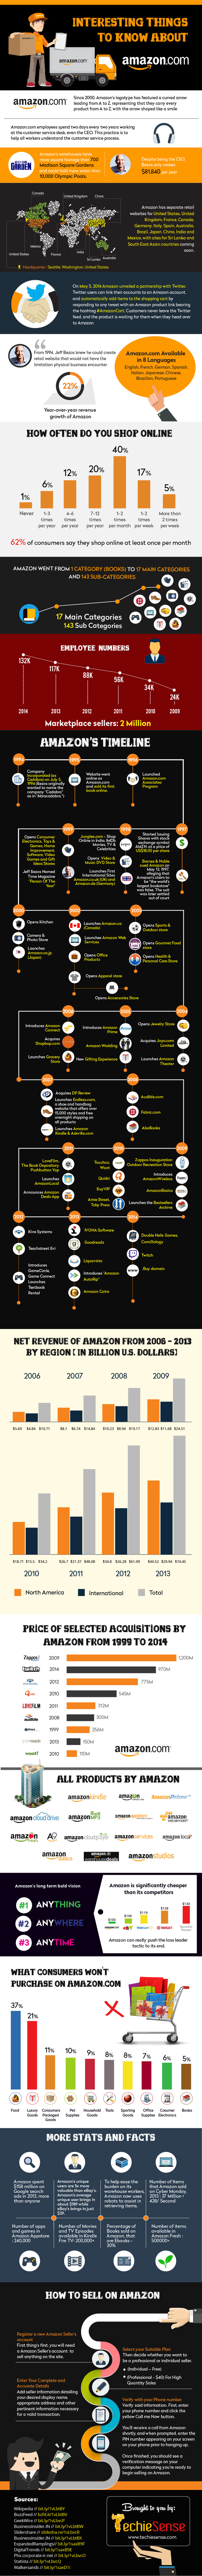 Amazon Facts and Stats 2014